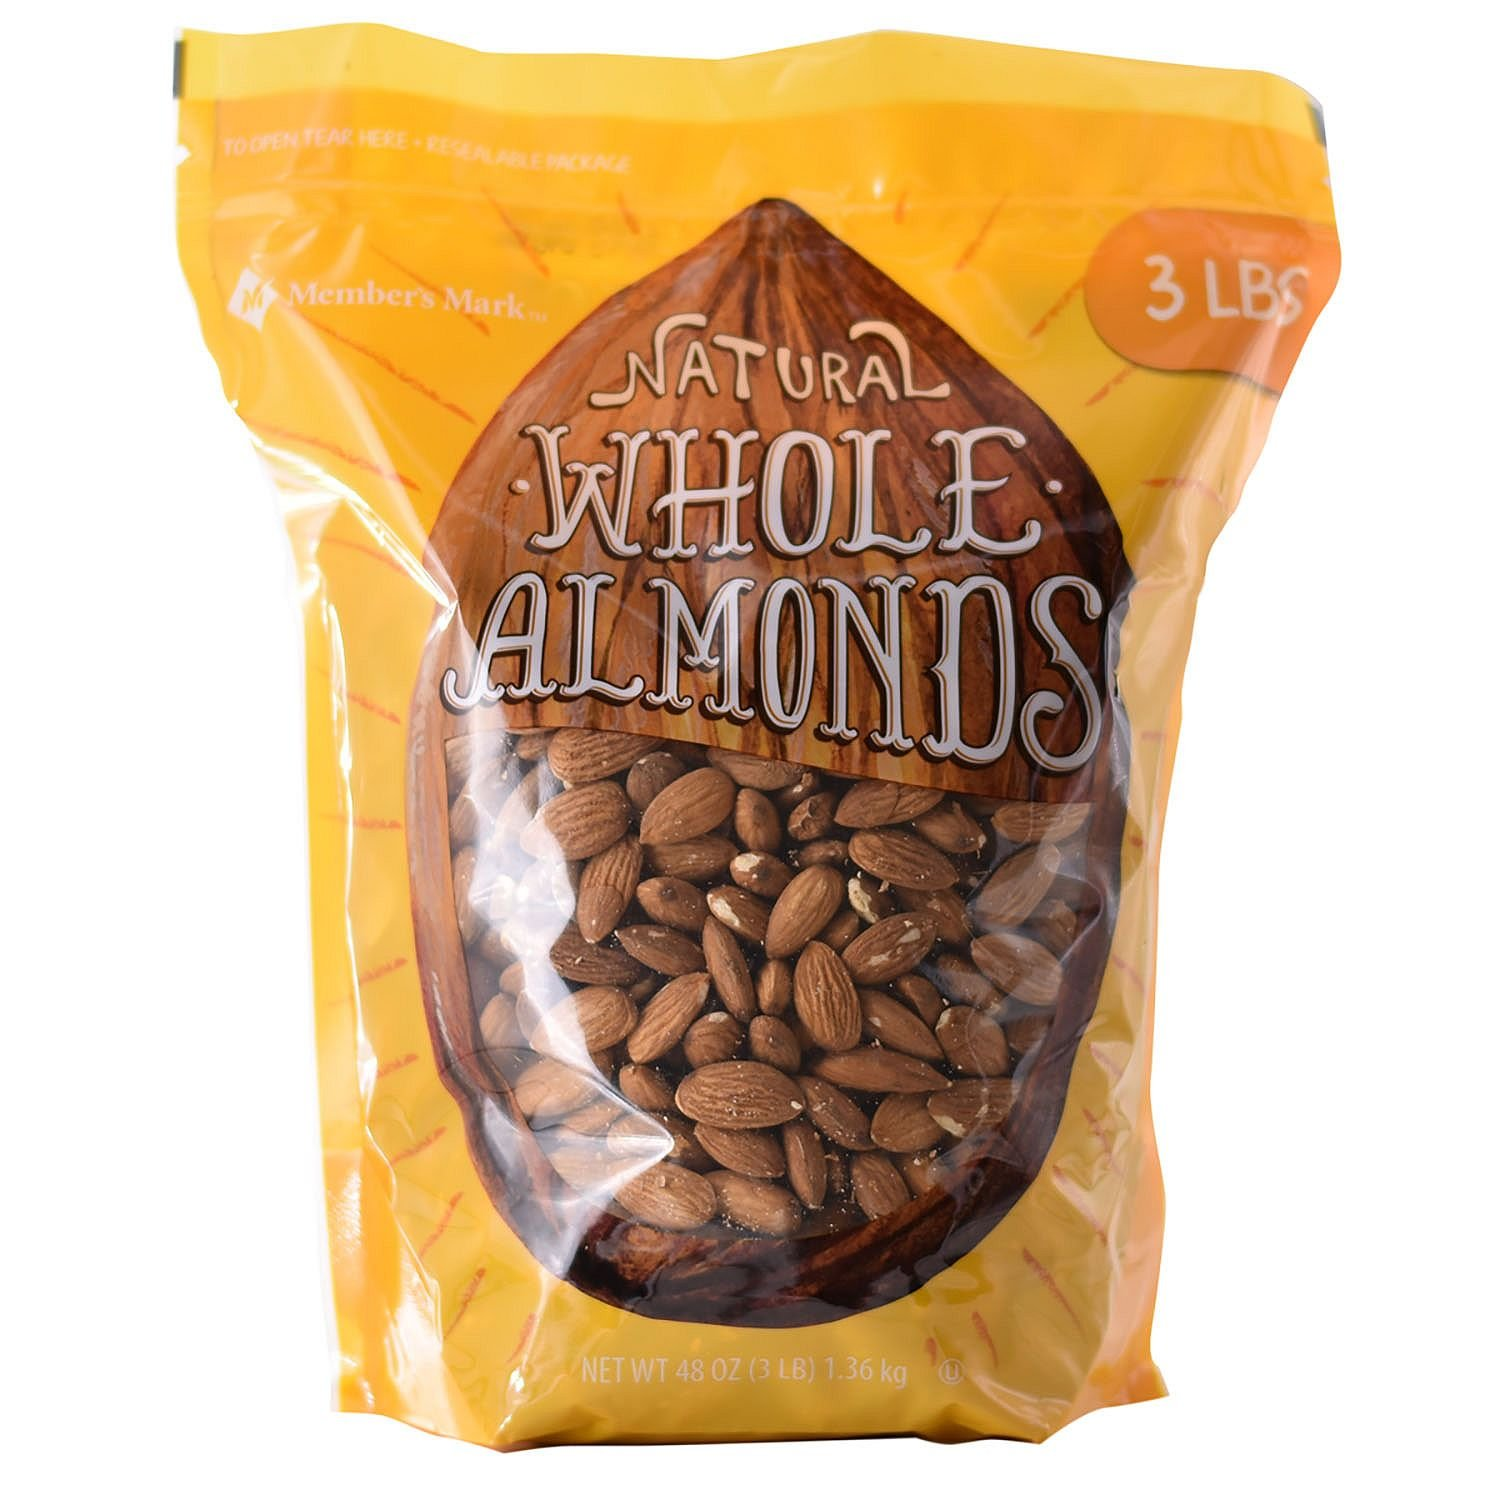 Member's Mark Whole Almonds (3 lbs.) (pack of 6)